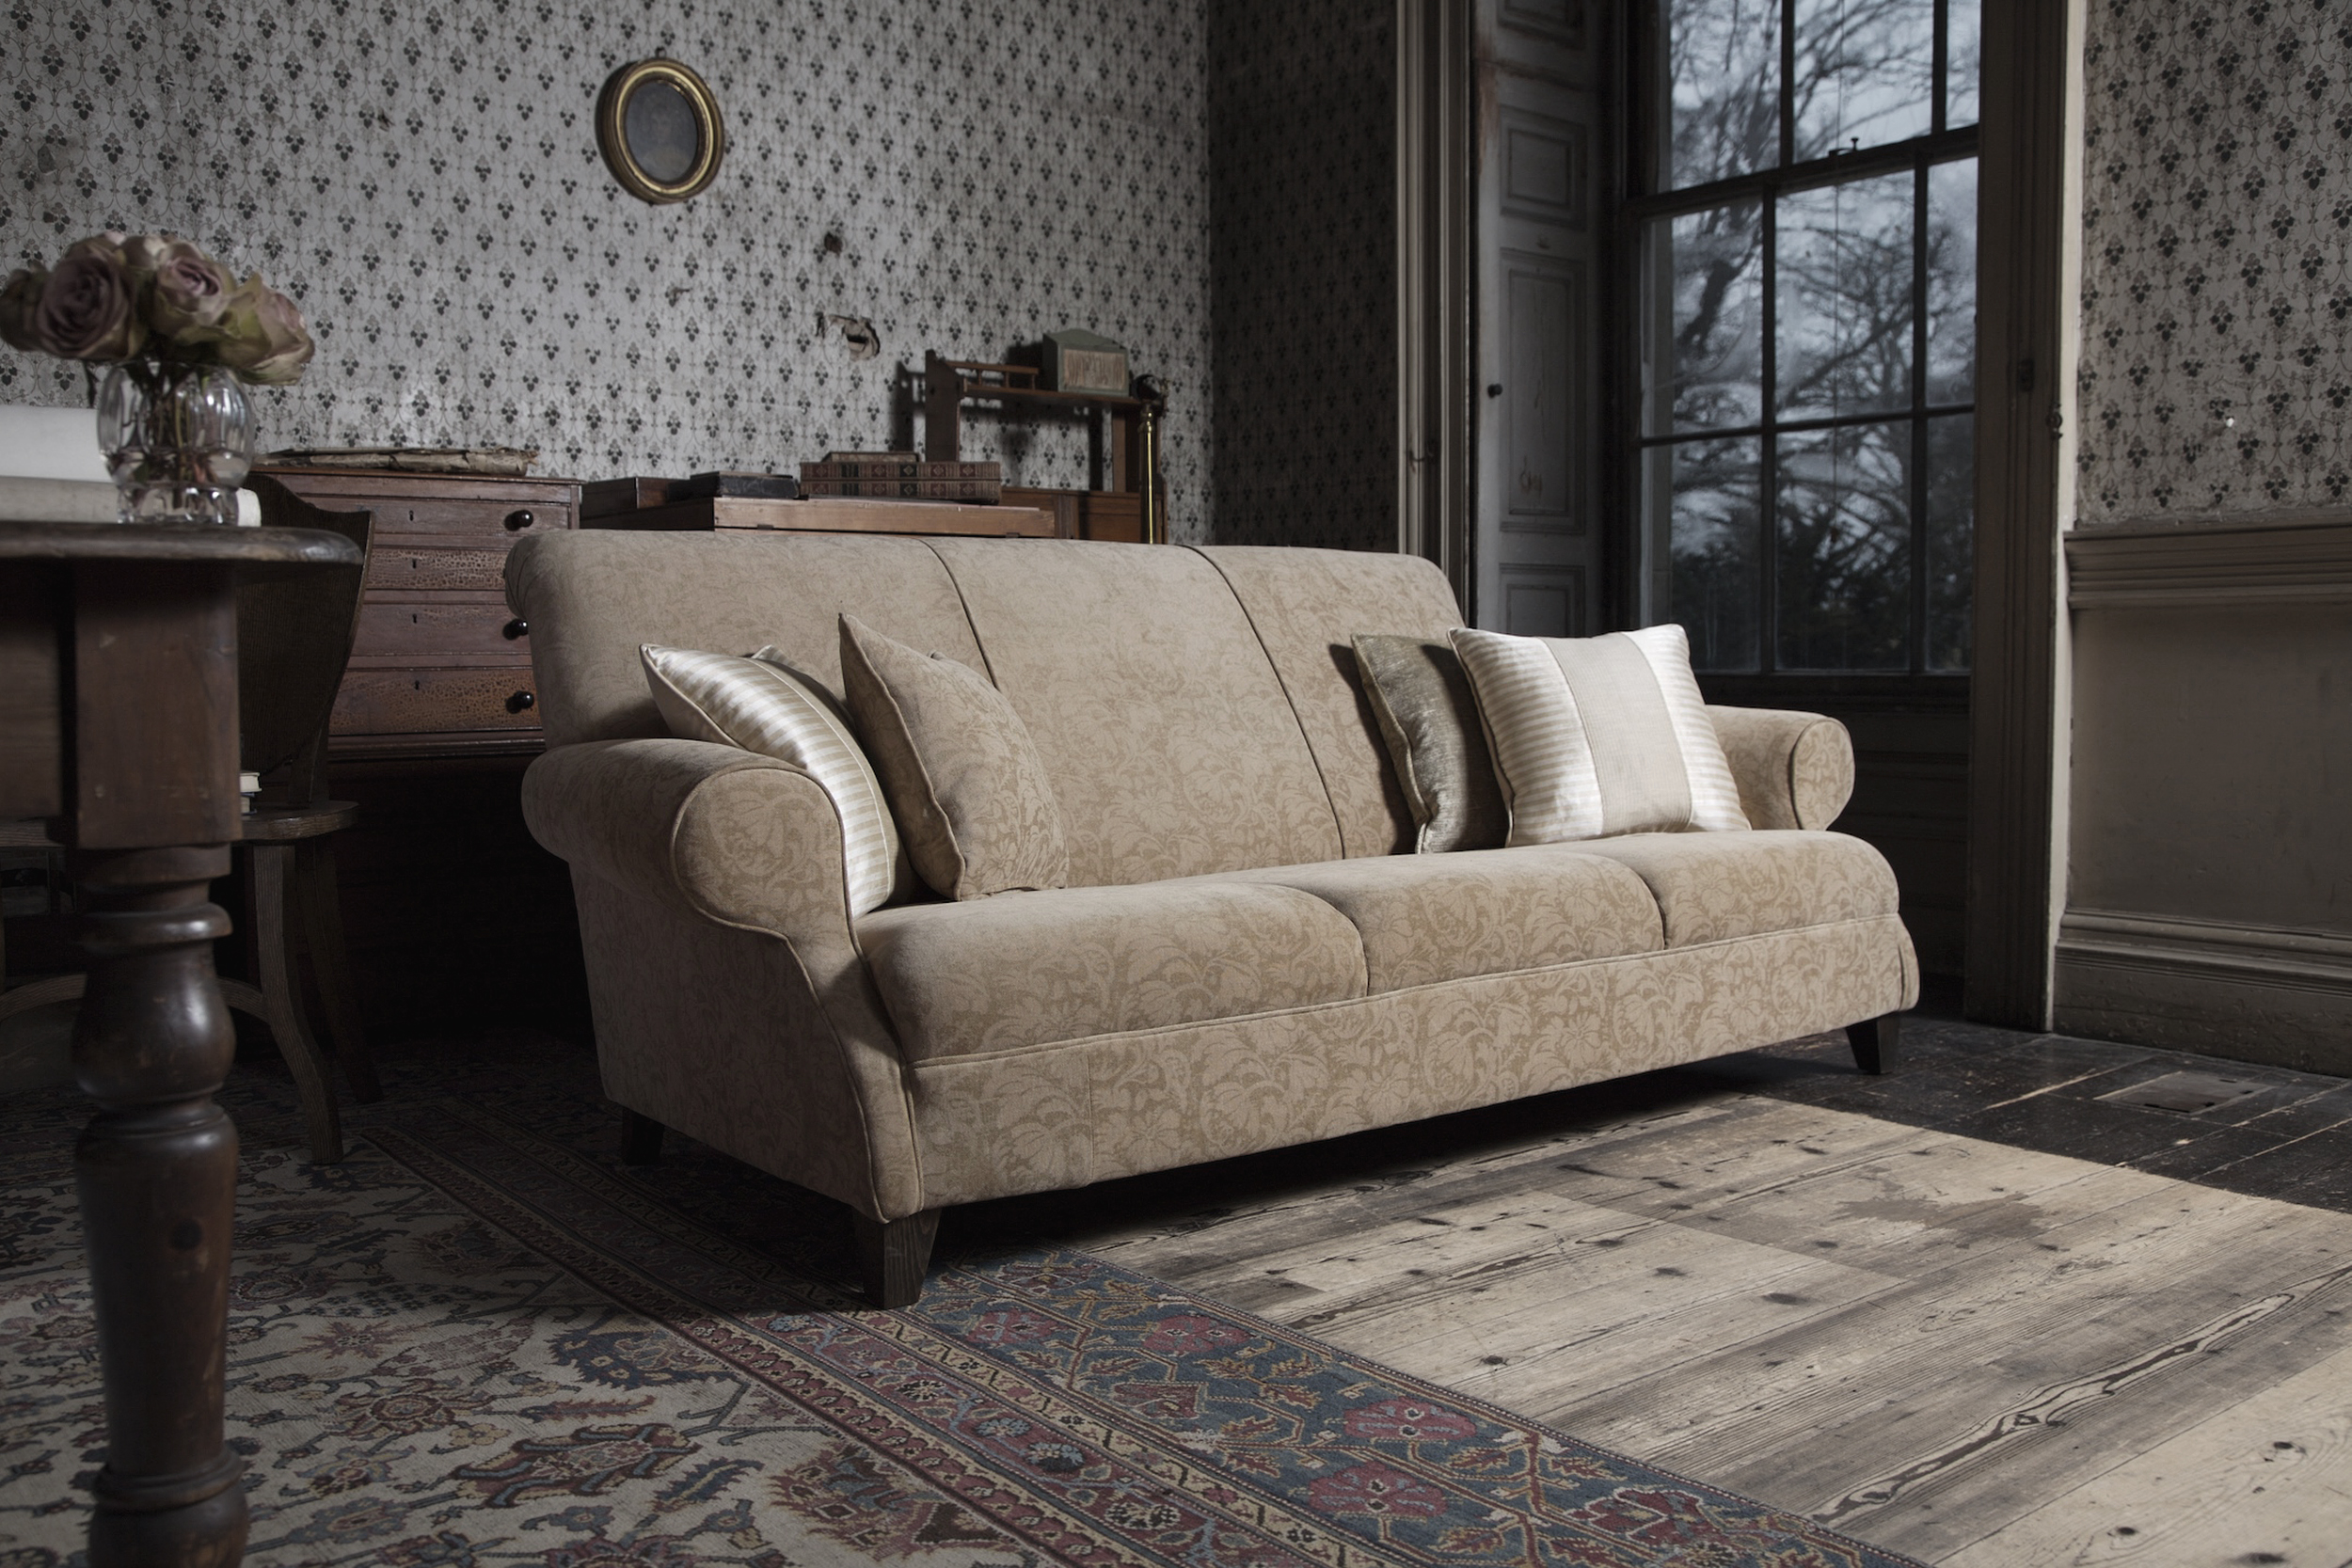 Norton sofa, Tamarisk Designs